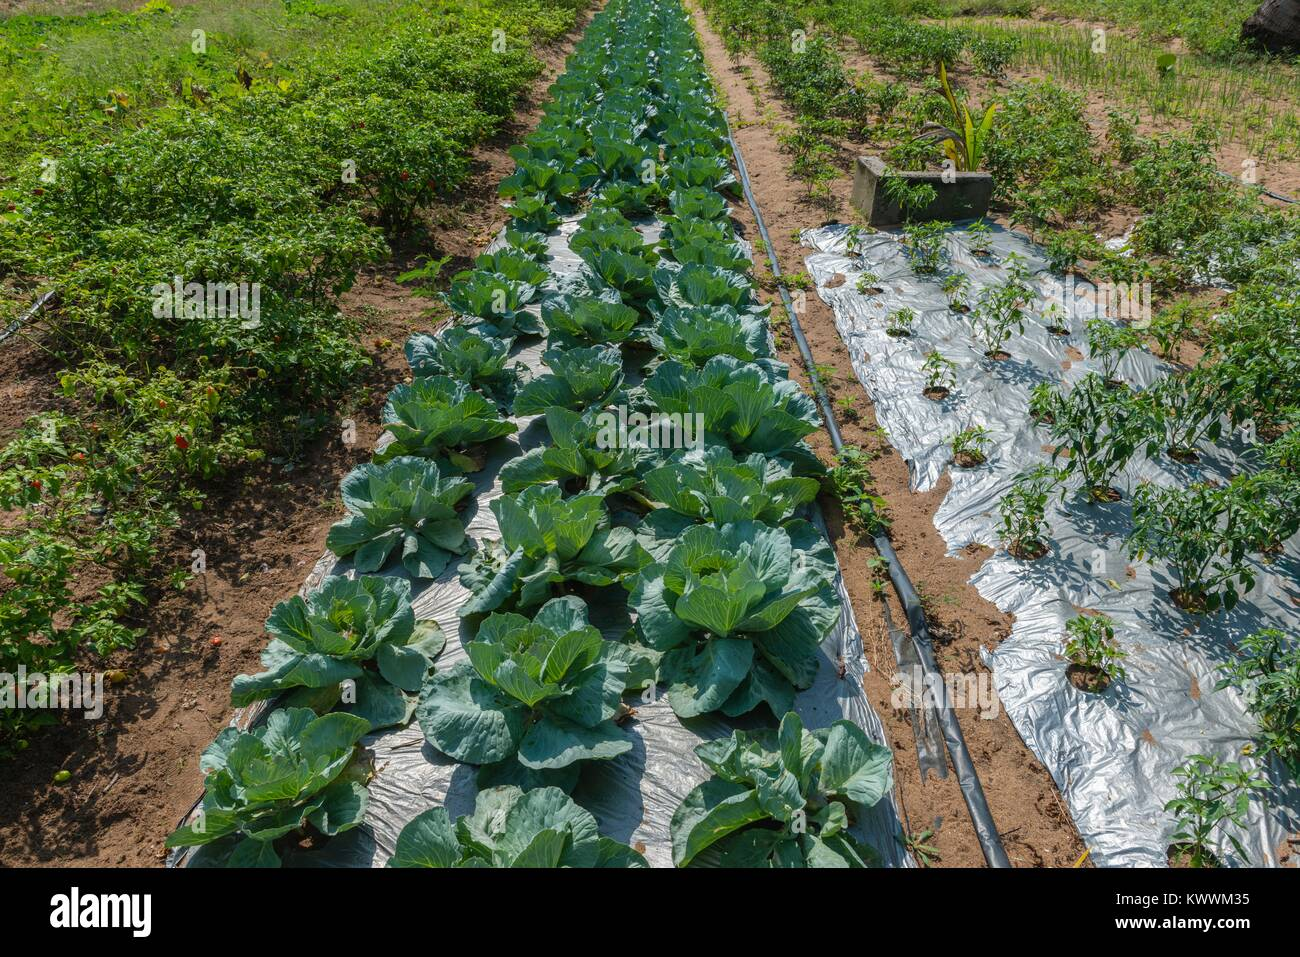 Farming in Ghana, irrgated pepper and cabbage fields  of farmer Gideon Agbodzi, Volta Region, Anloga - Stock Image